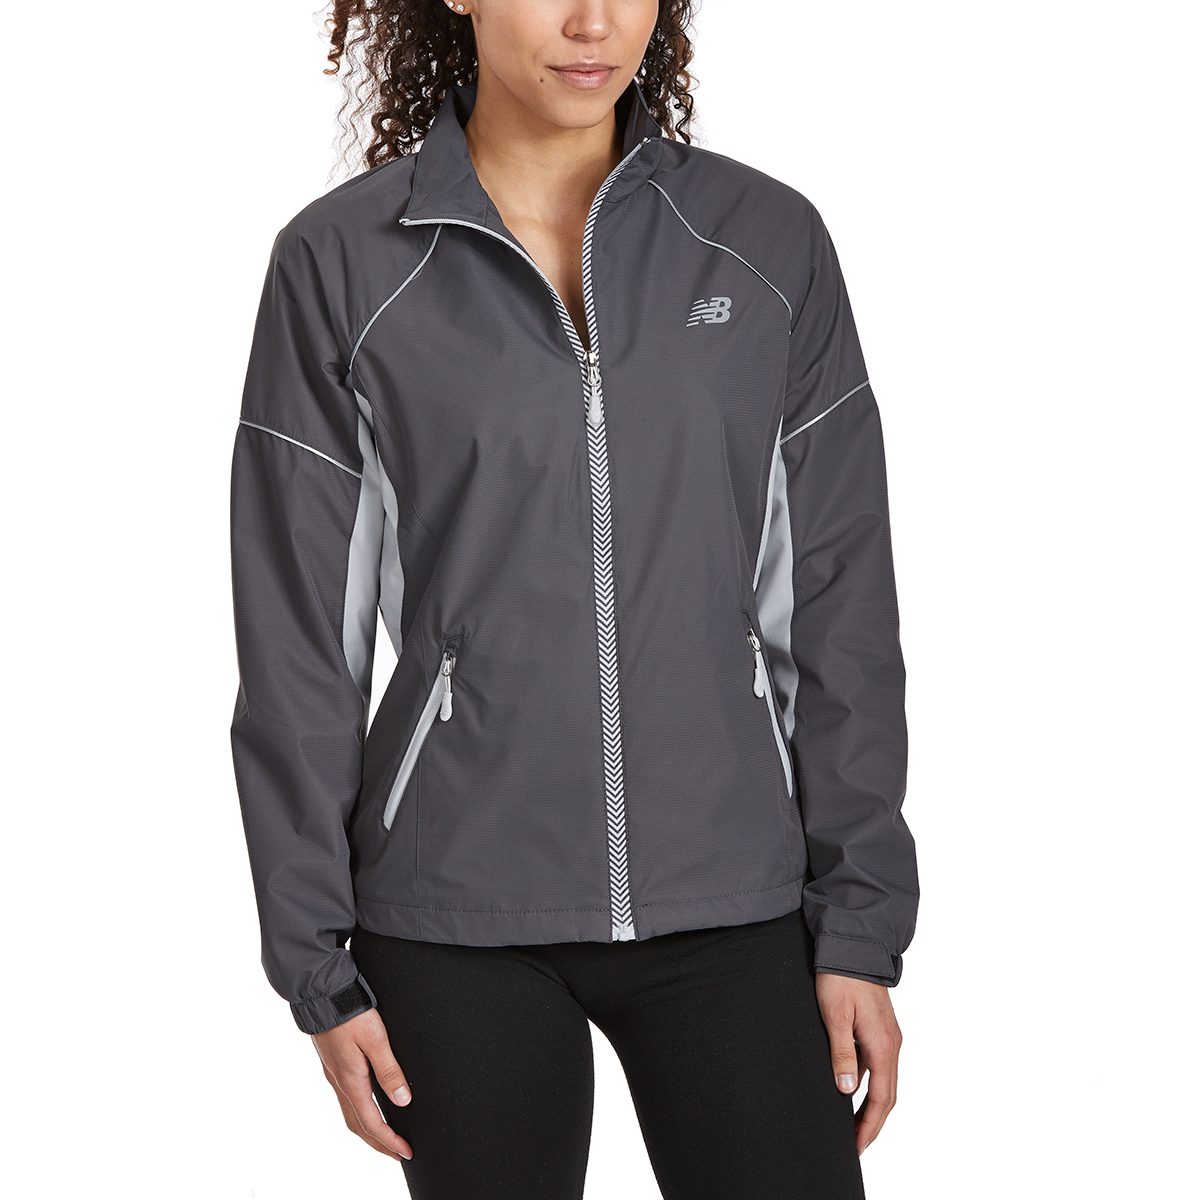 New Balance Women's Poly Dobby Mock Neck Jacket - Black, L